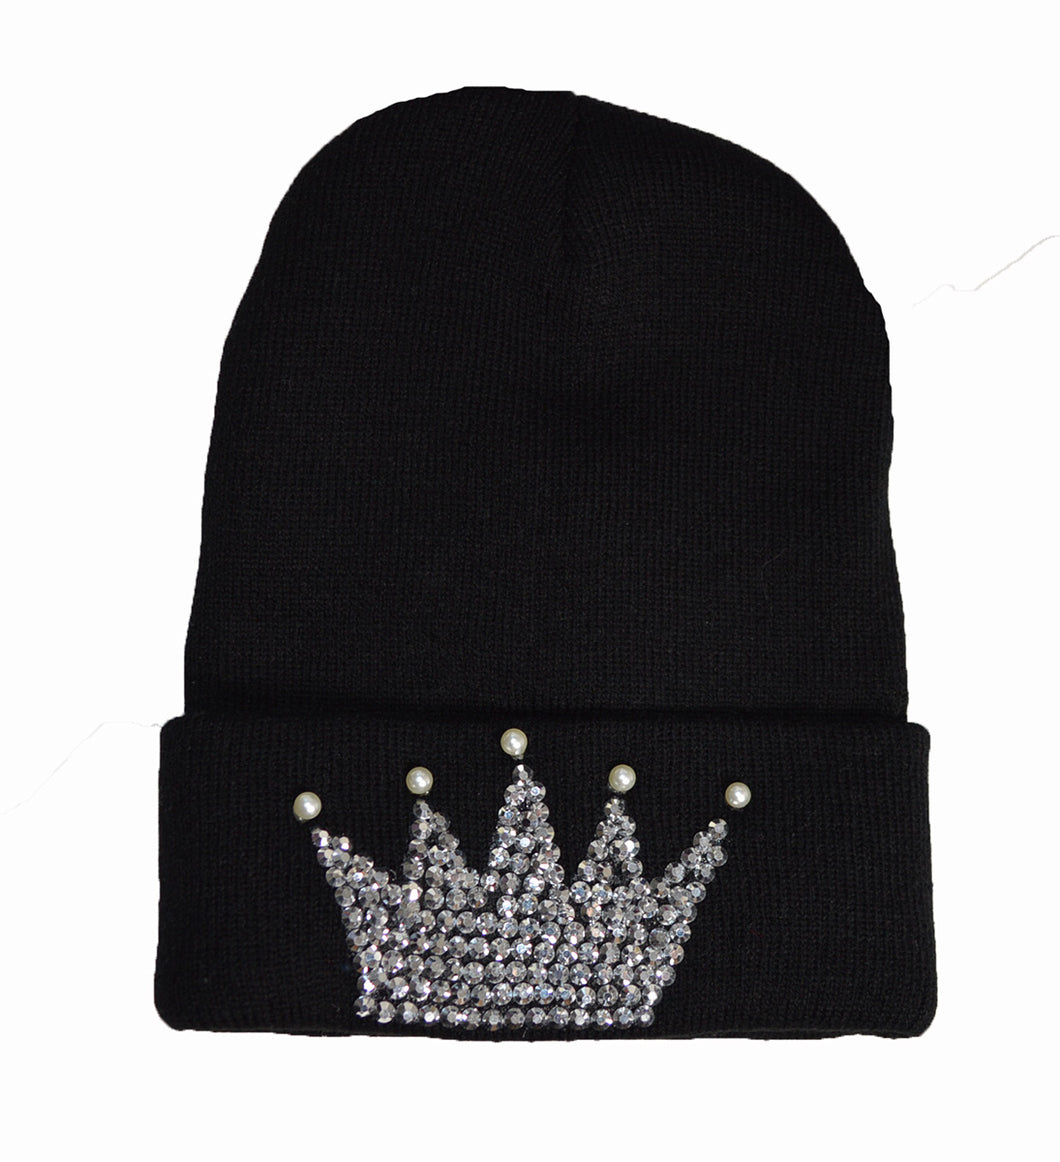 Princess Tiara Diamante detail beanie Black